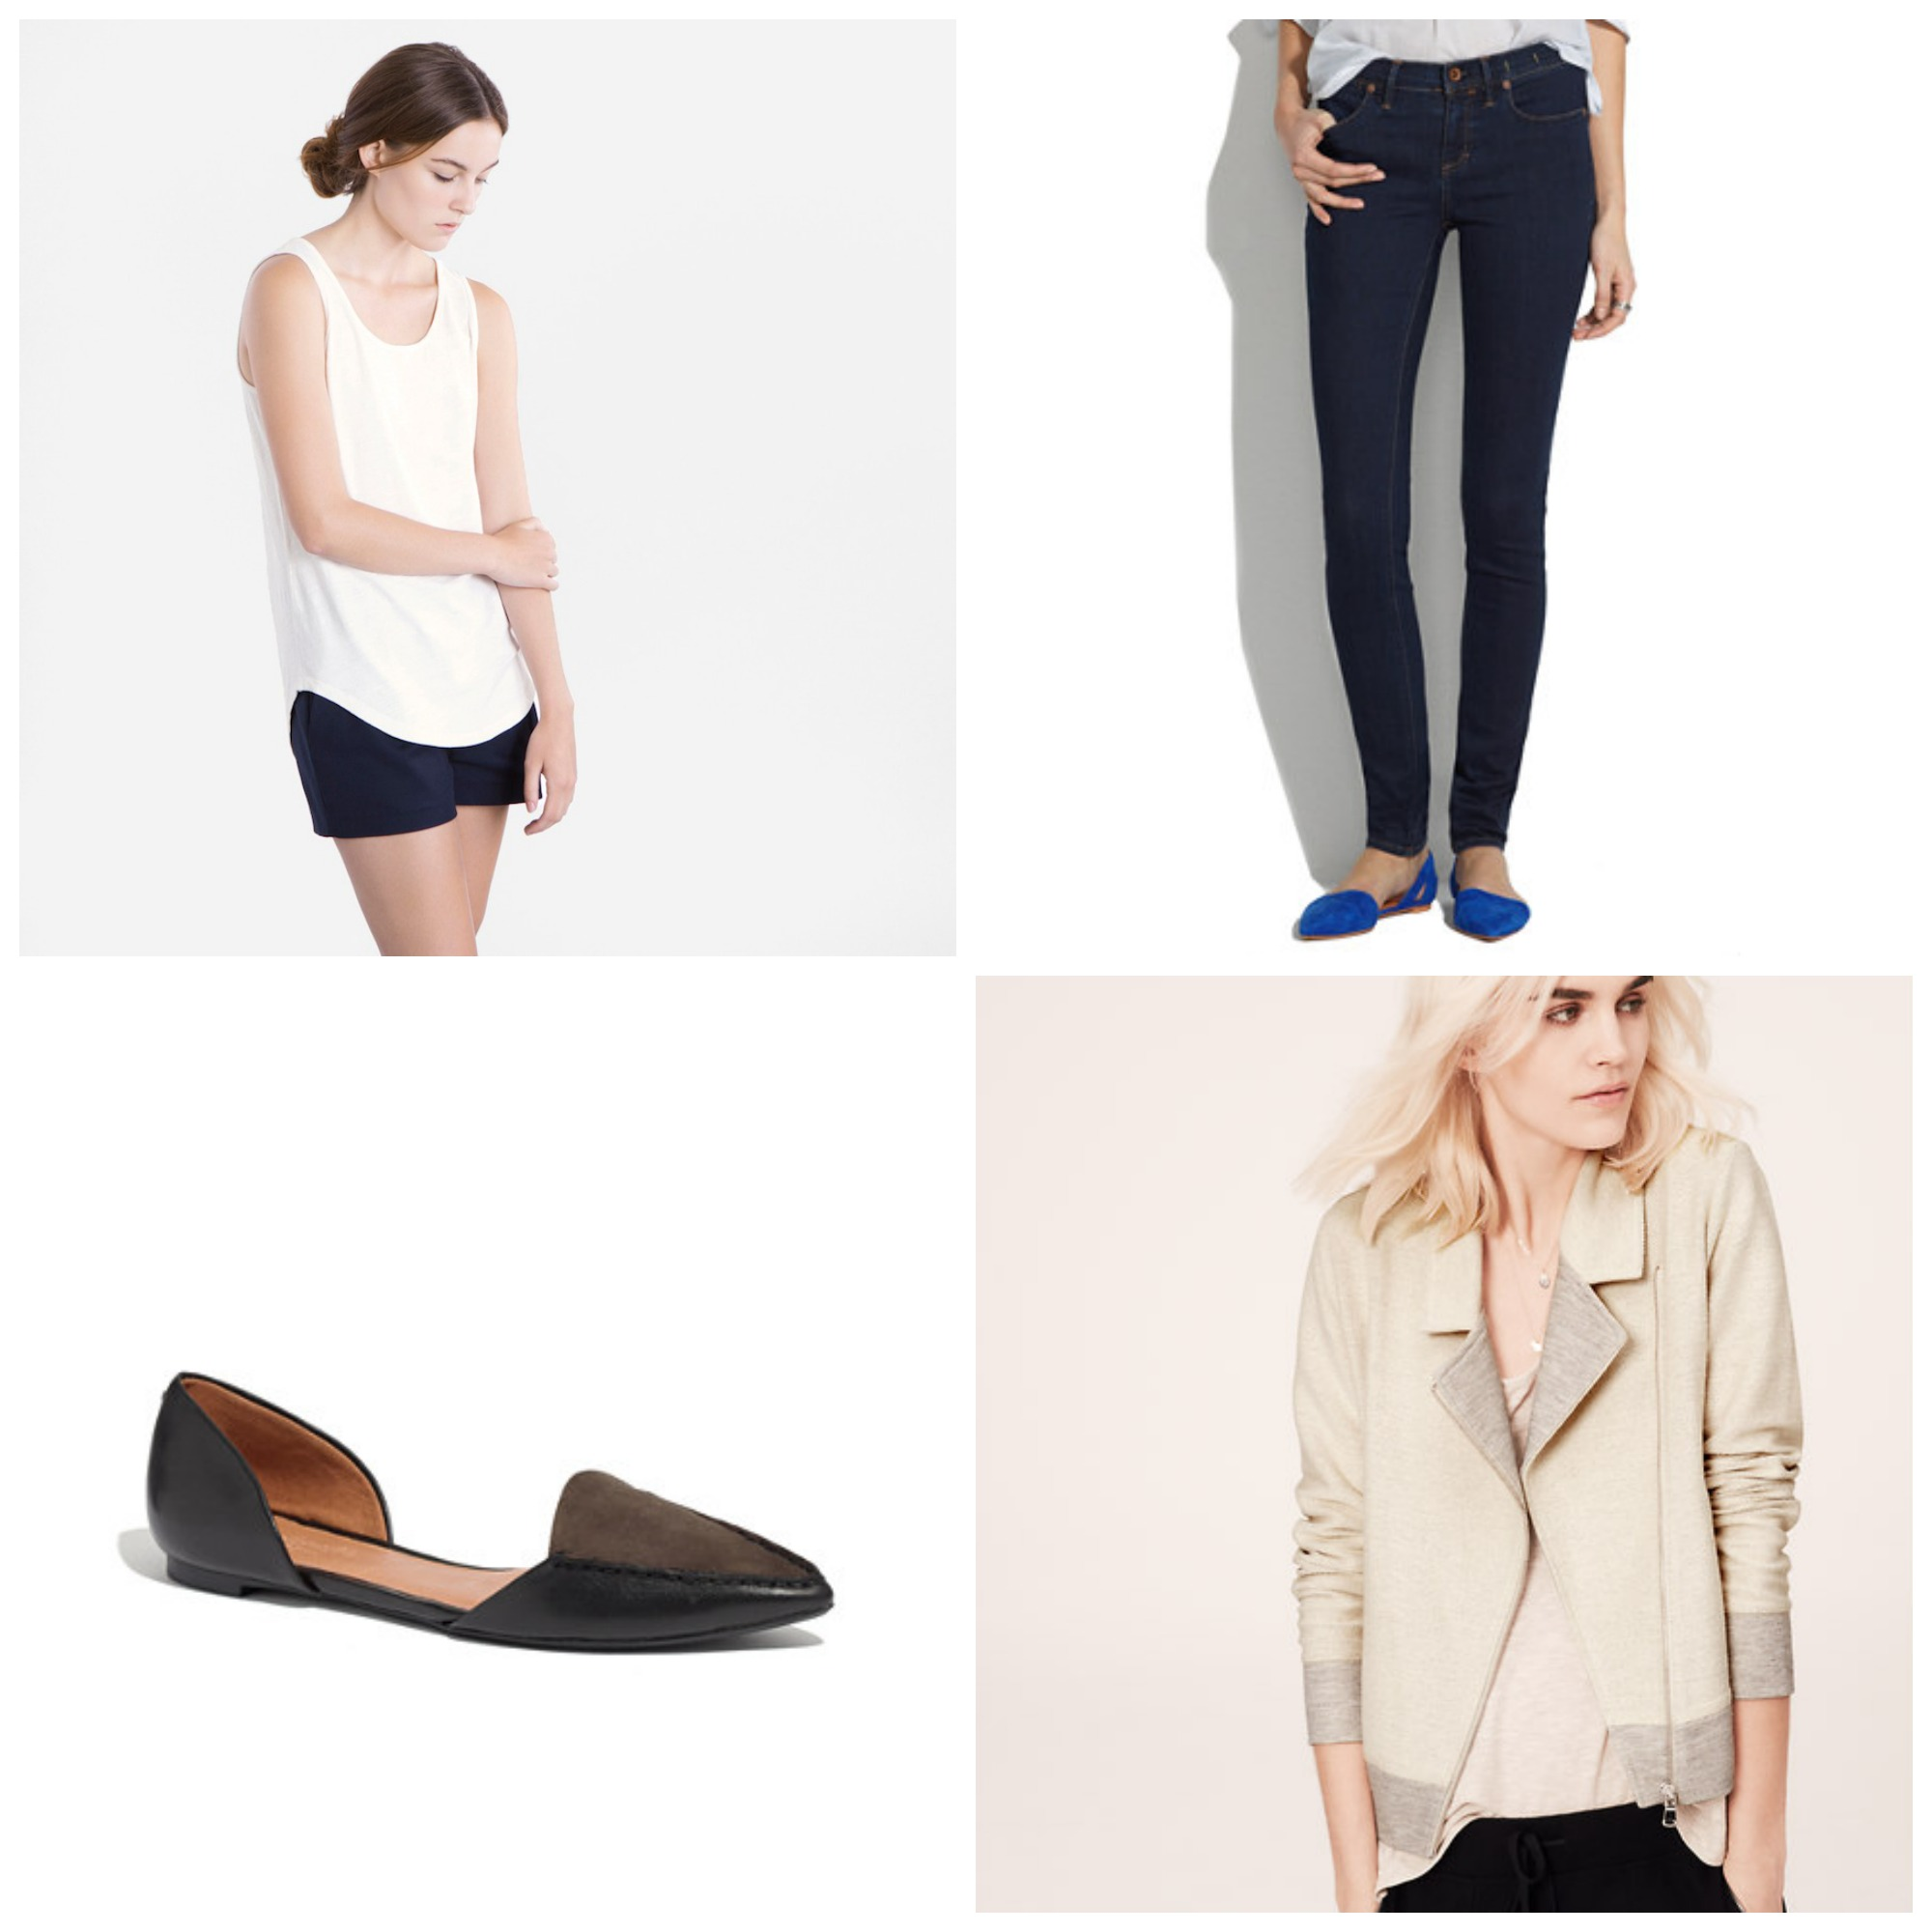 From left to right:  Everlane Drape Tank in Cream ($24)  |  Madewell Skinny Skinny Jeans in Madewell rinse ($115)  |  Madewell Maude Flat in Black Coal ($118)  |  Lou & Grey Oatmeal Moto Jacket ($84.41 CAD)